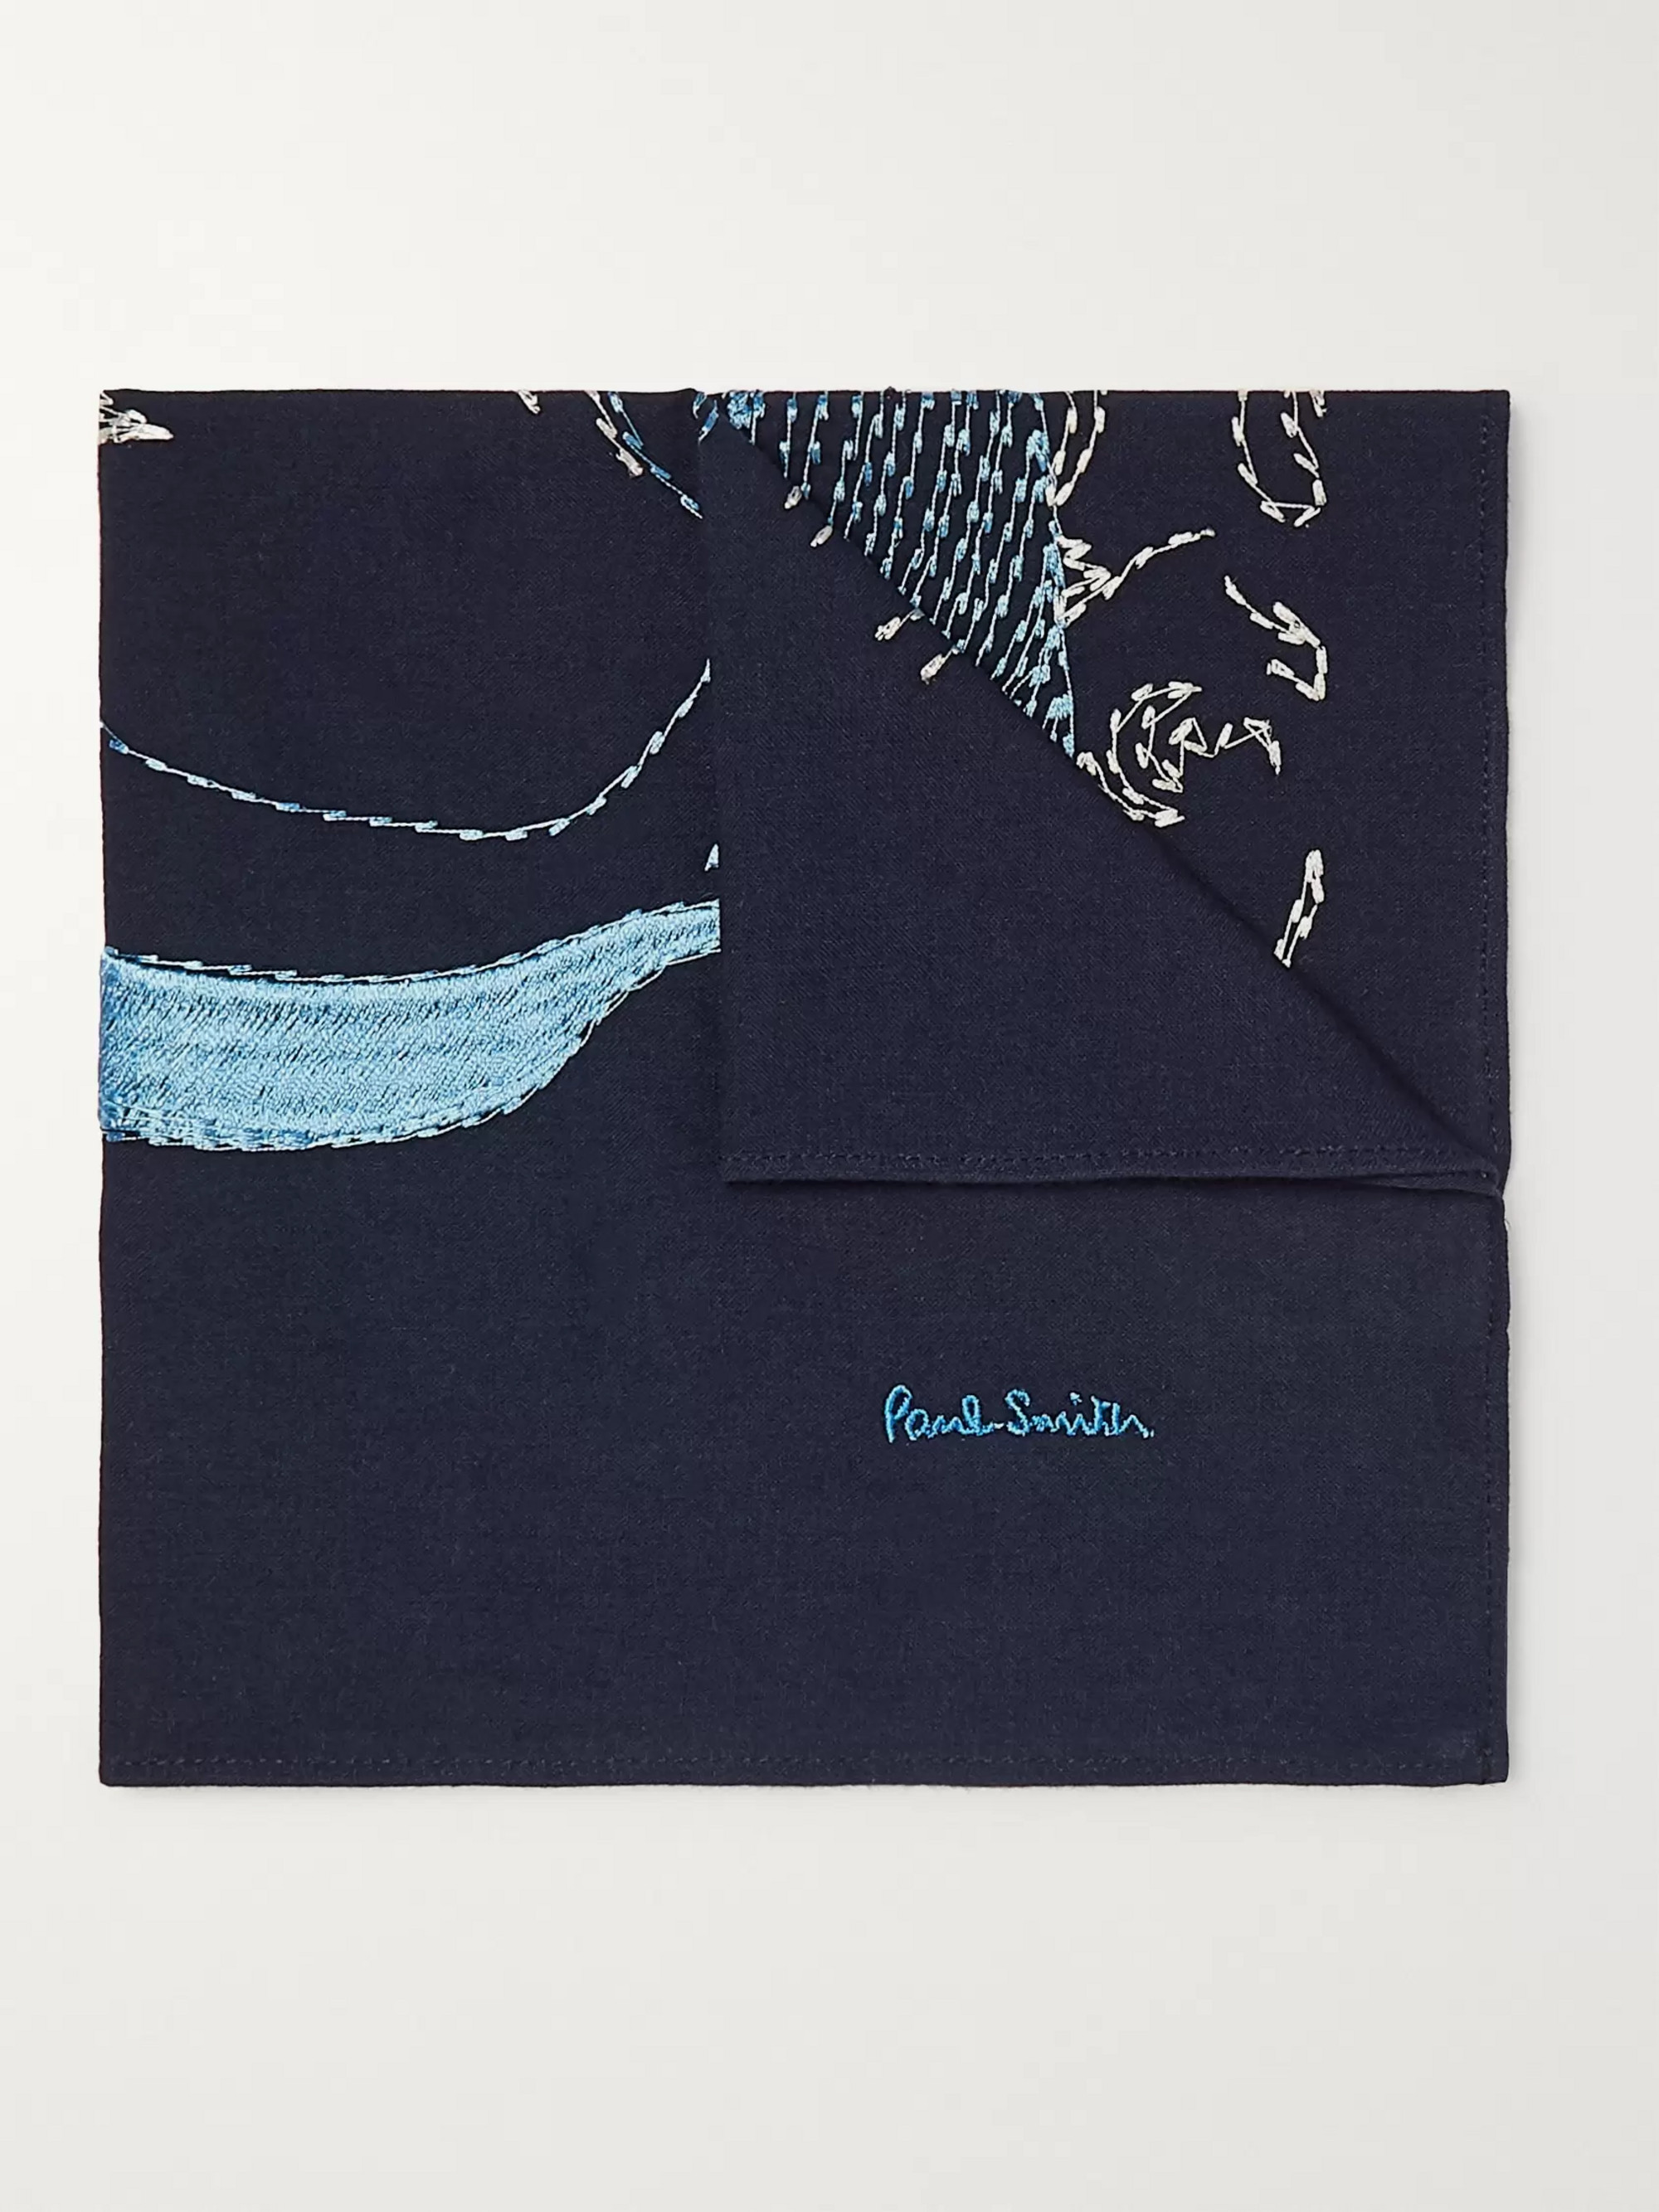 Paul Smith Embroidered Cotton Pocket Square